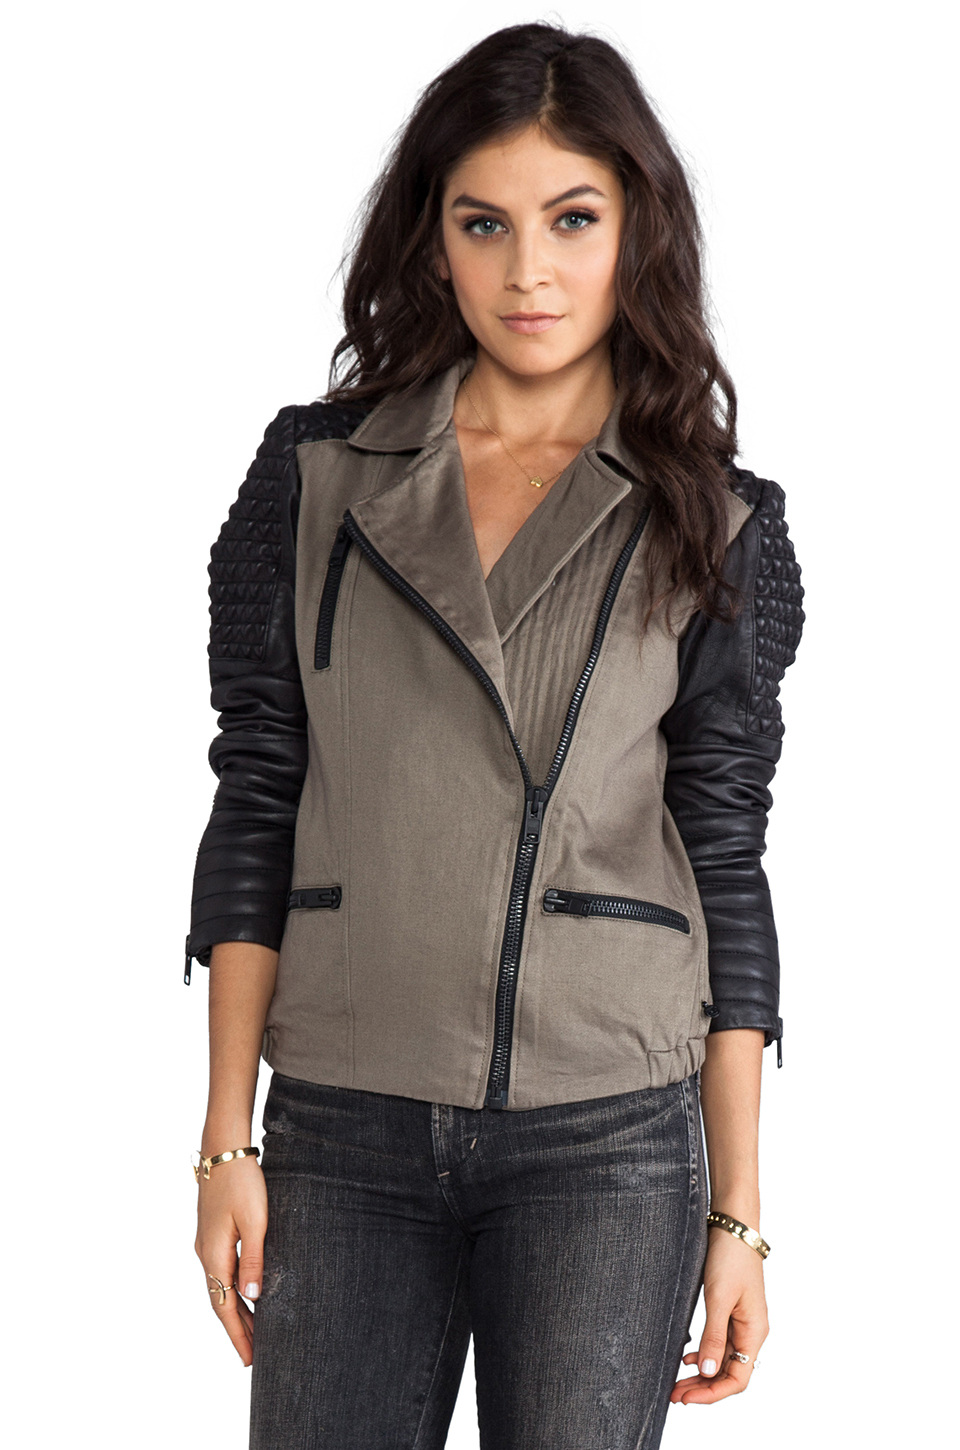 Military jacket with leather sleeves